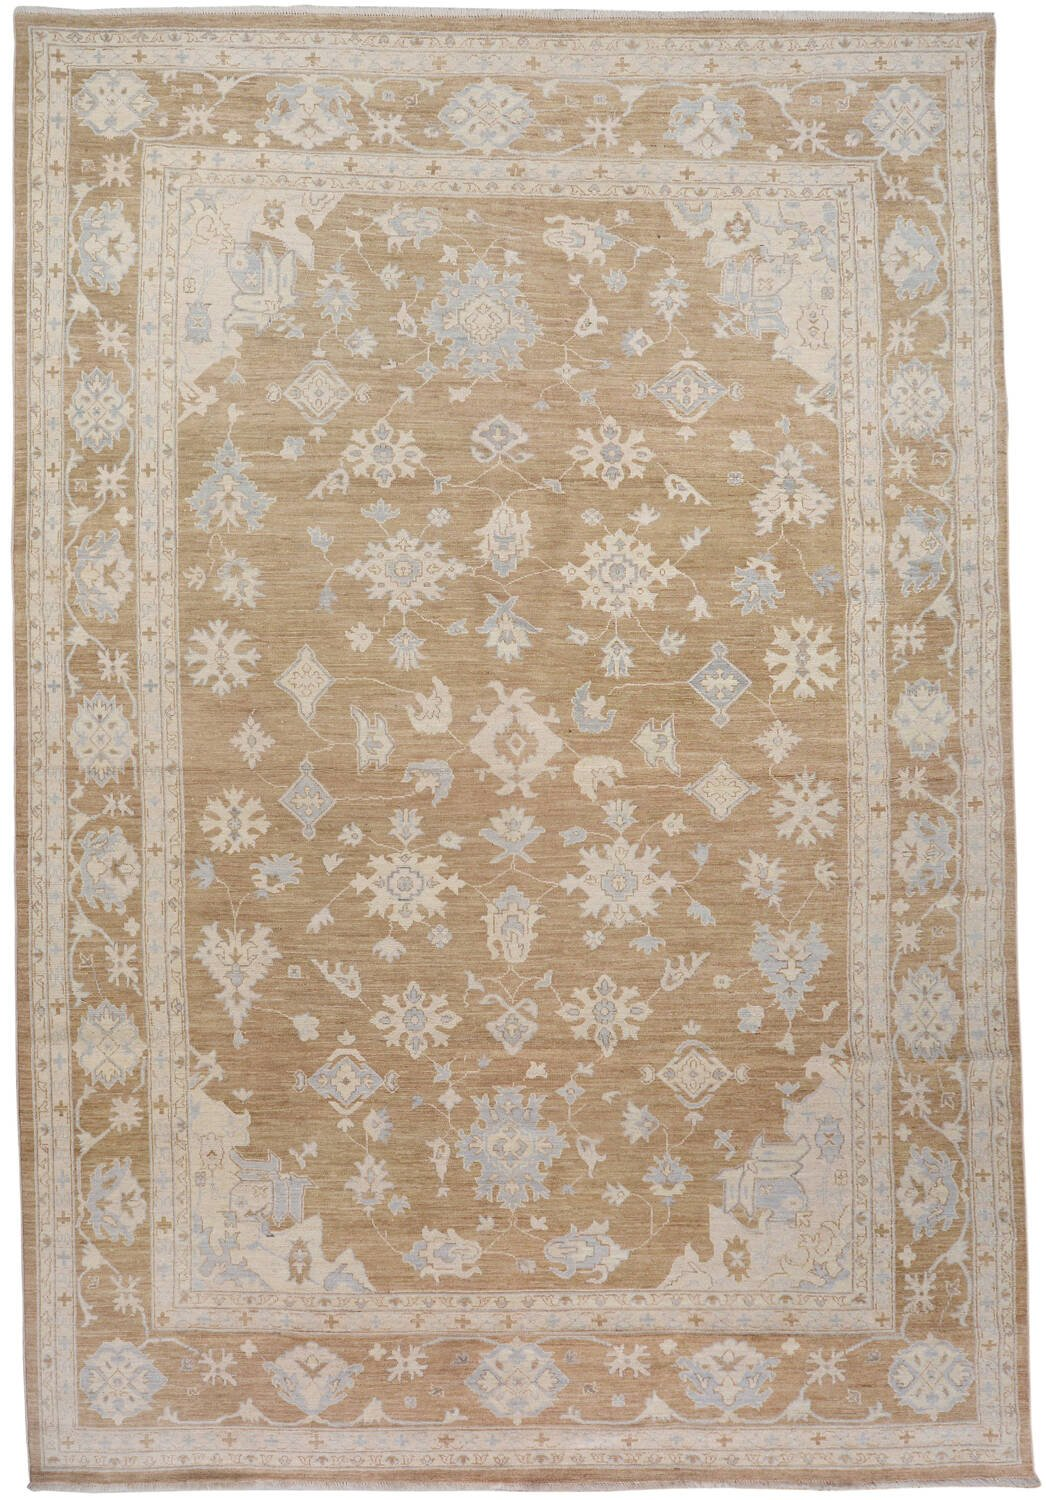 Muted Floral Oushak Turkish Area Rug 9x13 image 1